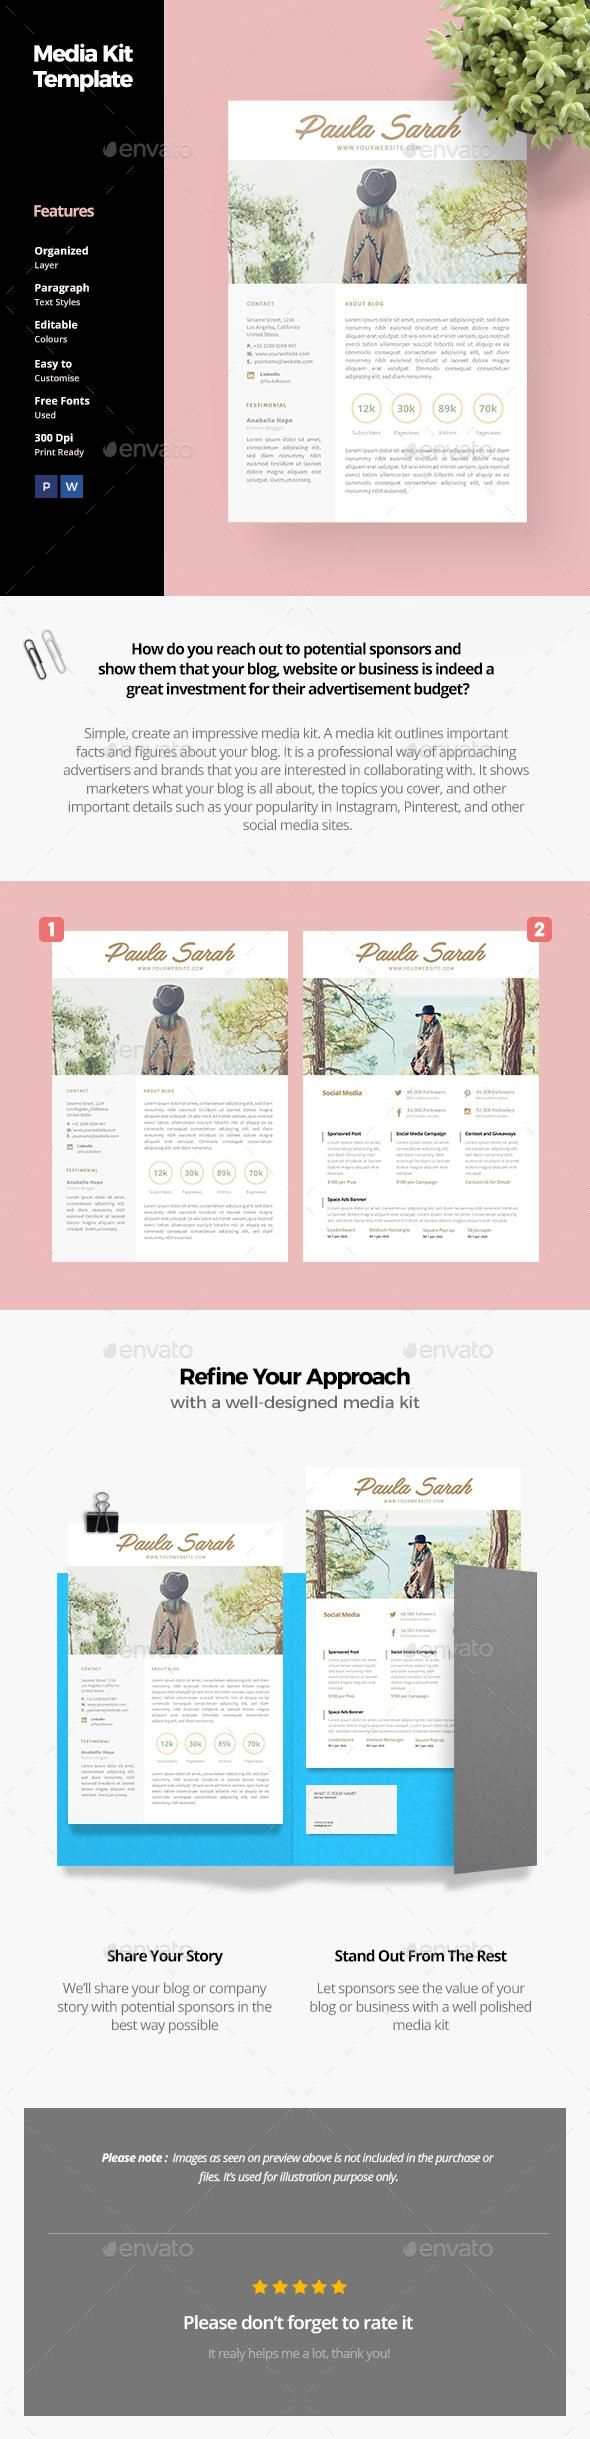 blog media kit template for 15 envato proposal invoice stationery stationerydesign template stationerytemplate graphicdesign design